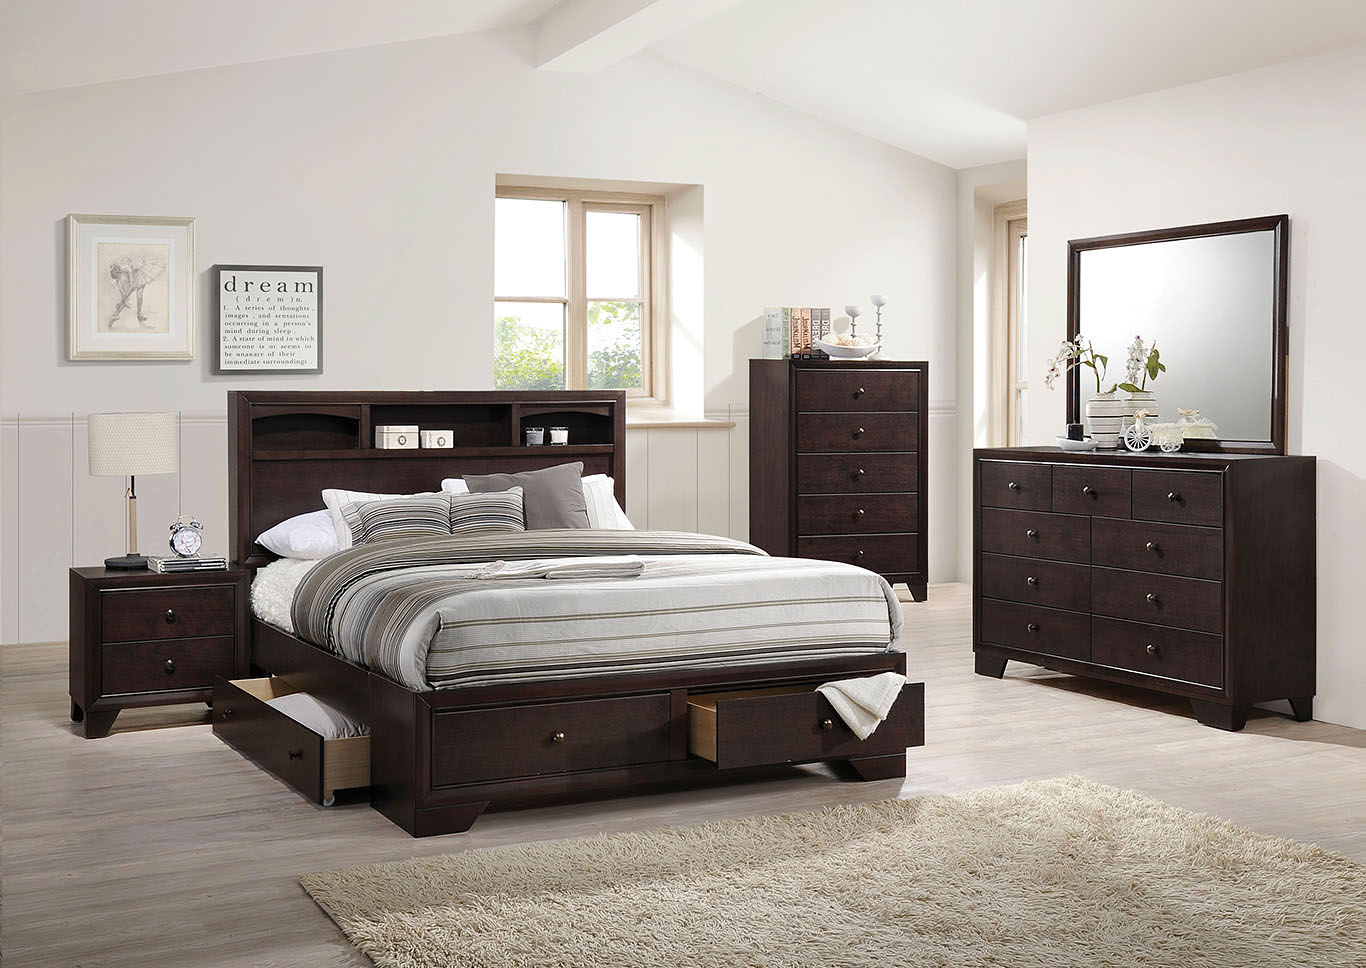 Madison II Espresso Queen Bed,Acme